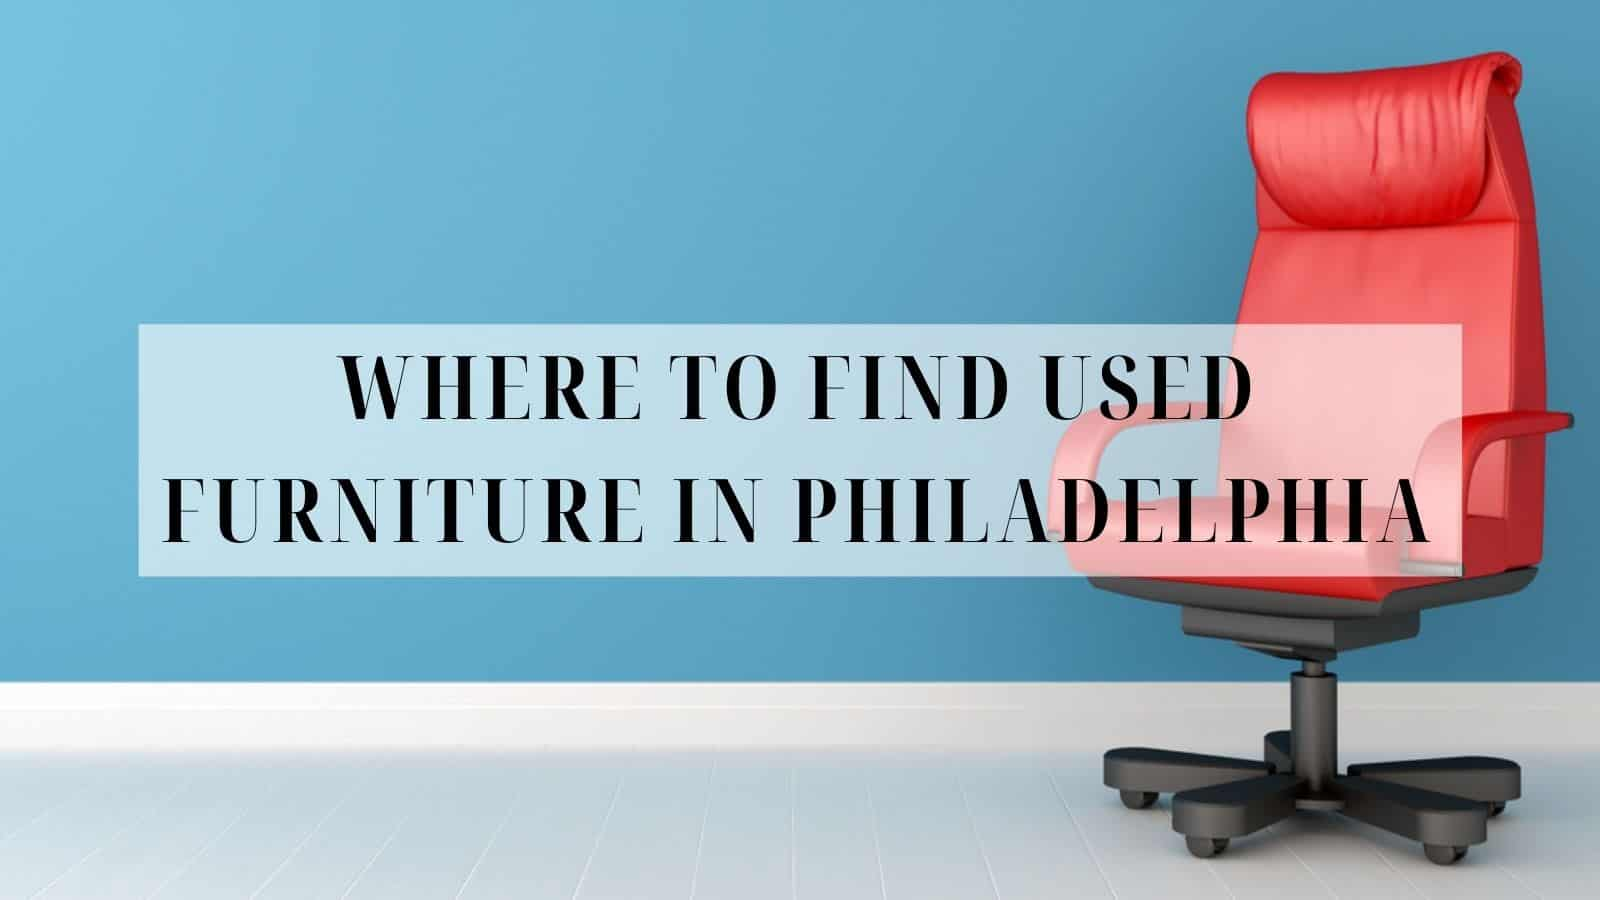 Where to Find Used Furniture in Philadelphia